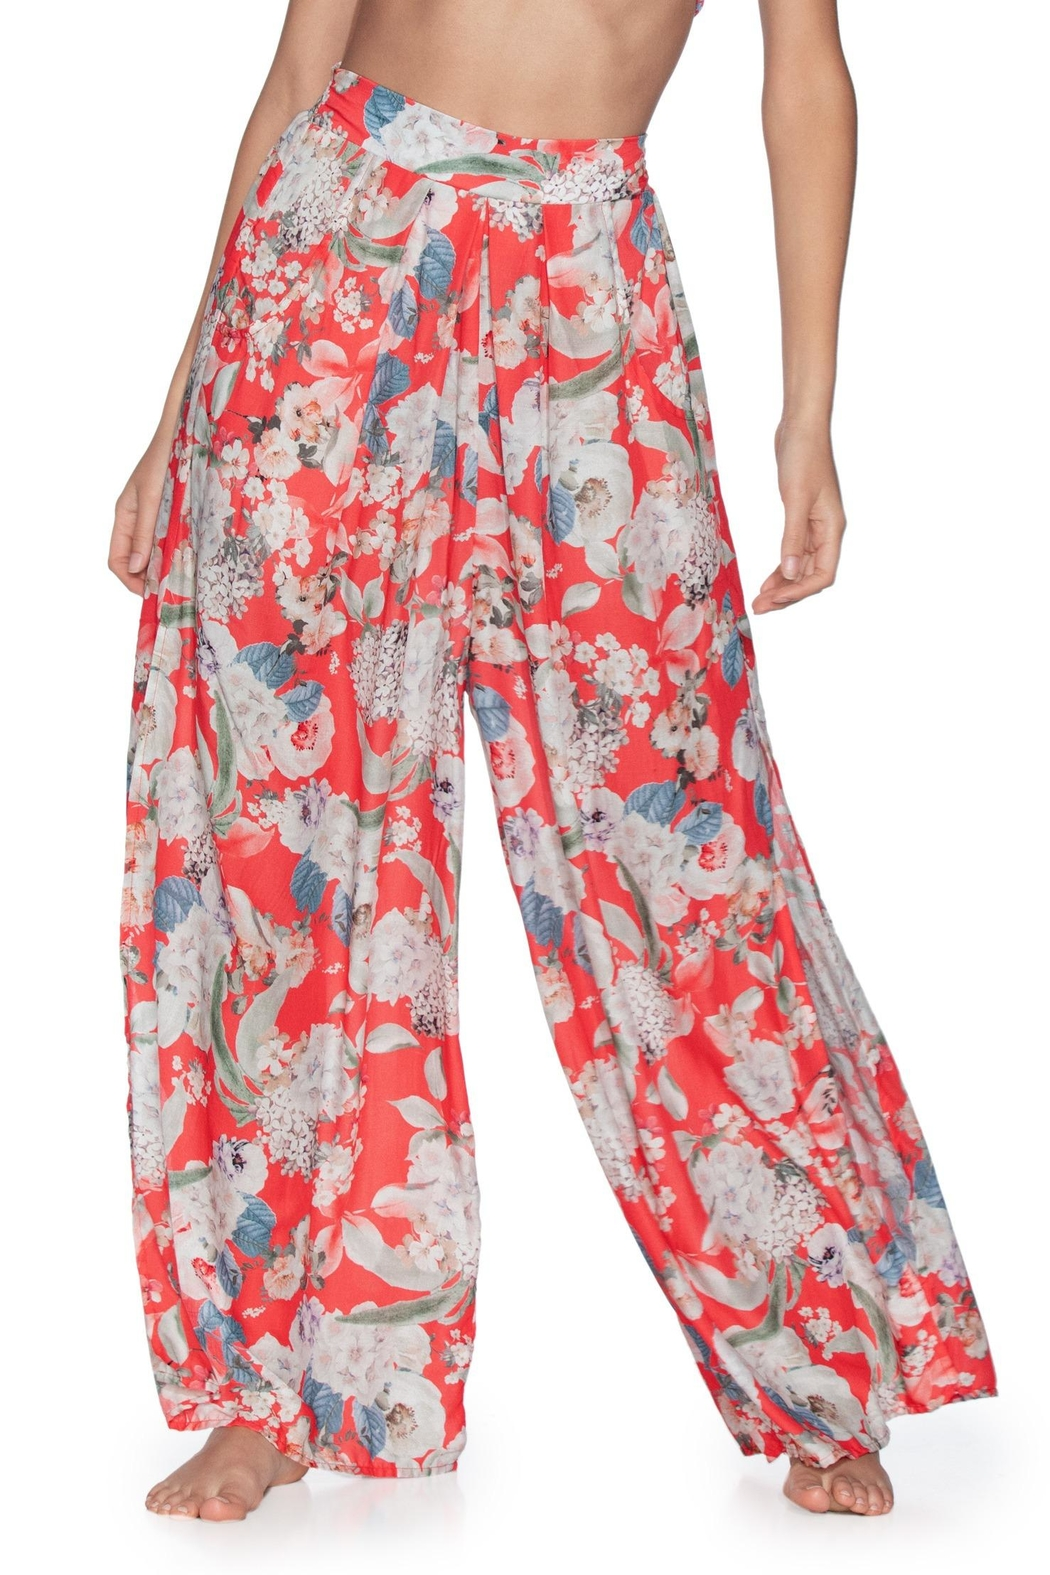 Maaji Swimwear Maaji Beach Pants - Side Cropped Image